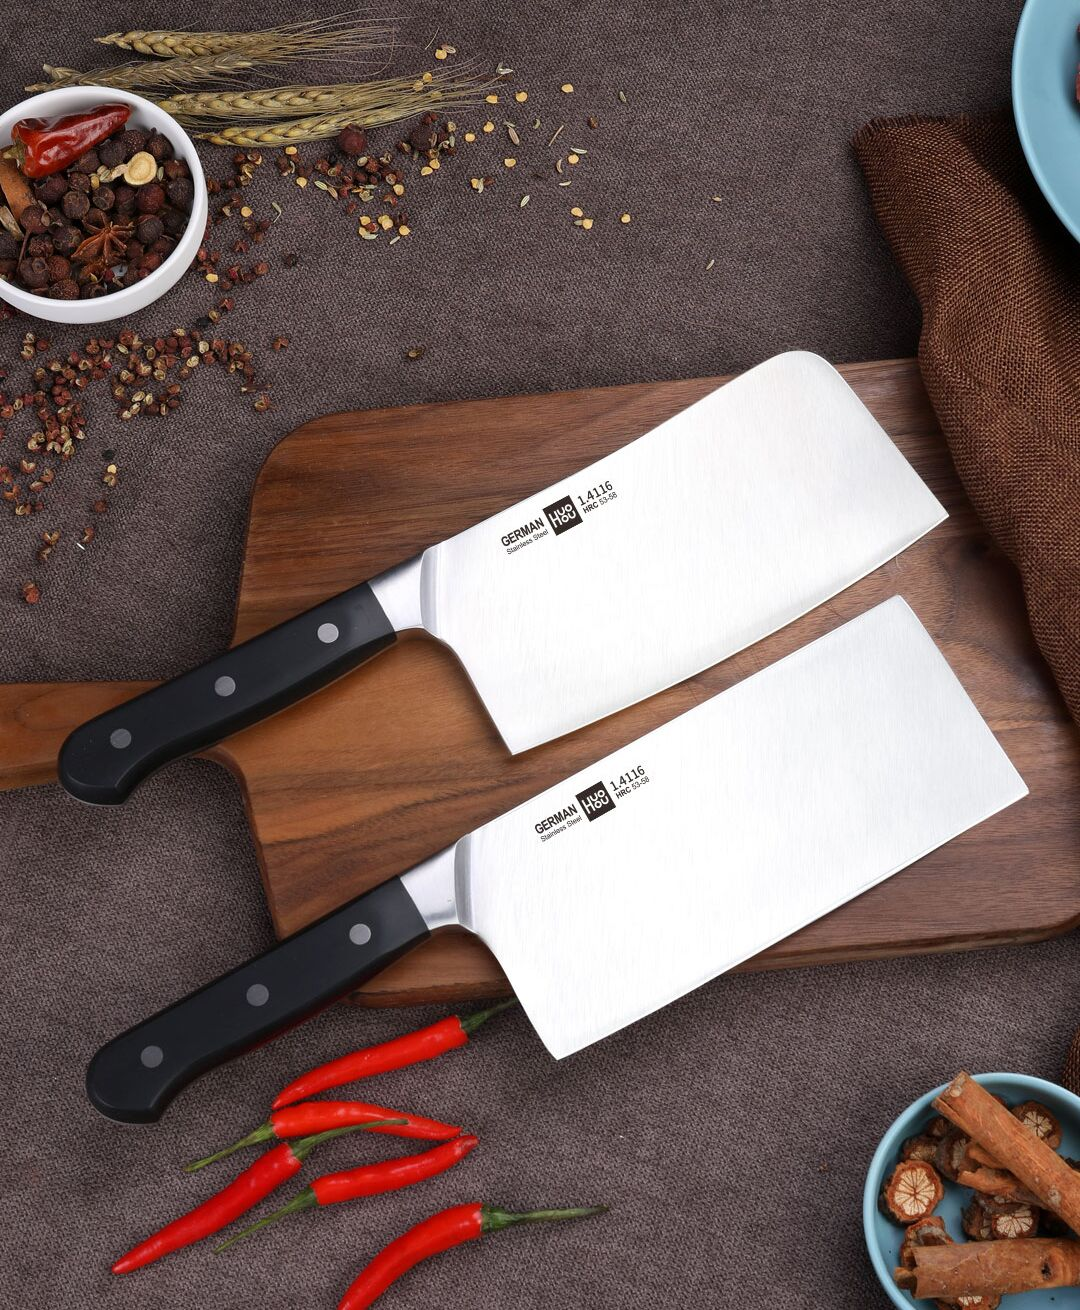 Кухонный нож Xiaomi Huo Hou Fire Molybdenum Vanadium Steel Kitchen Knife